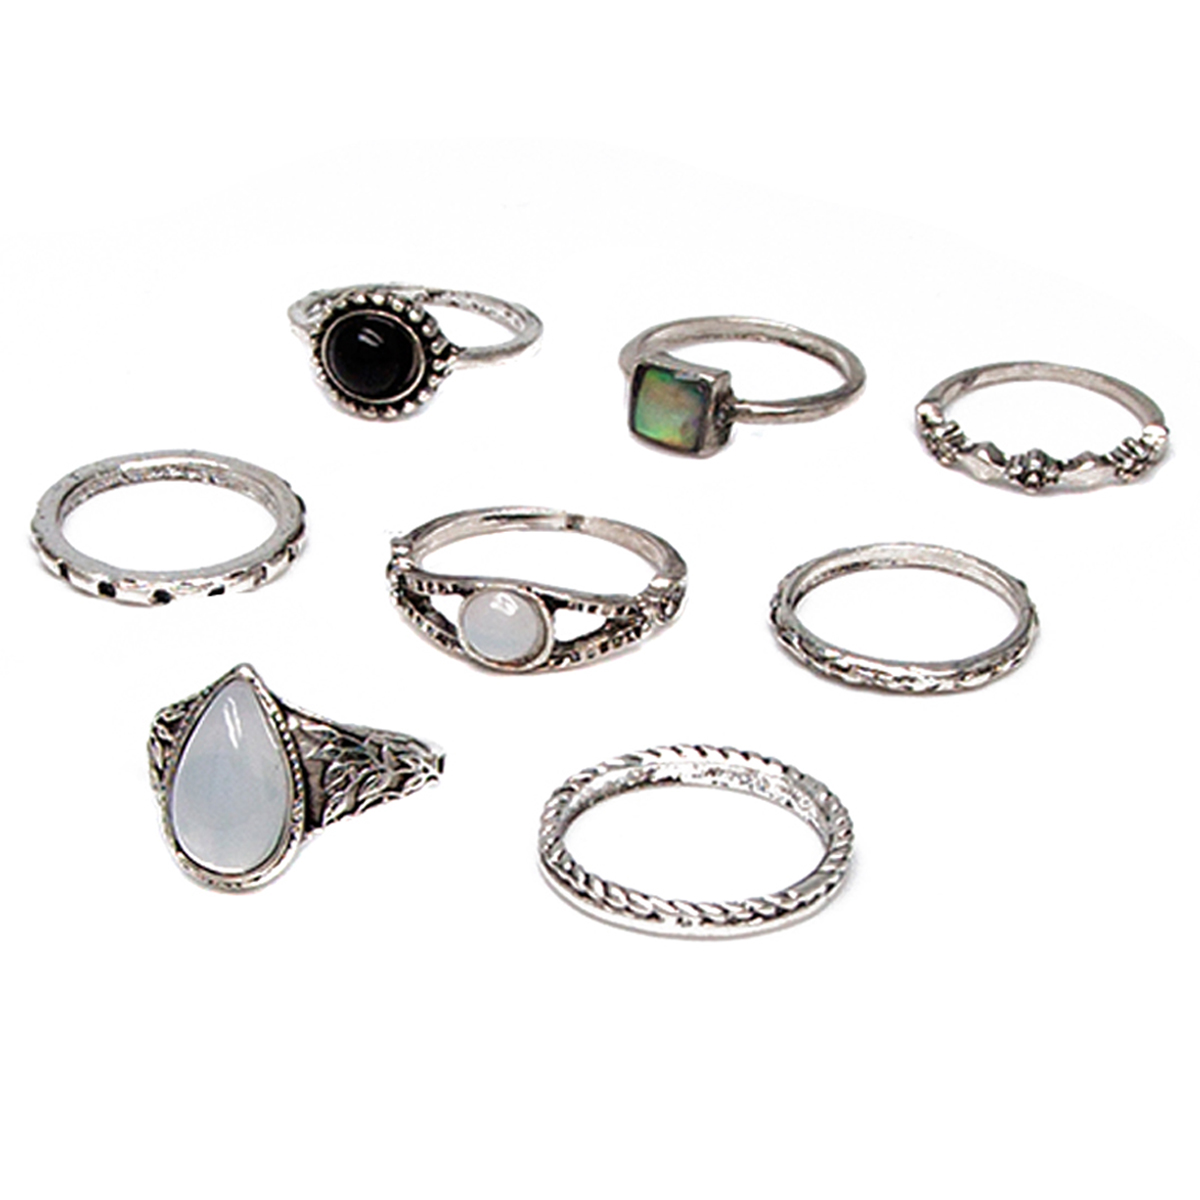 8PCS/Set Shellhard Vintage Rings Sets Boho Opal Stone Midi Above Knuckle Ring For Women Party Jewerly Gifts Accessories